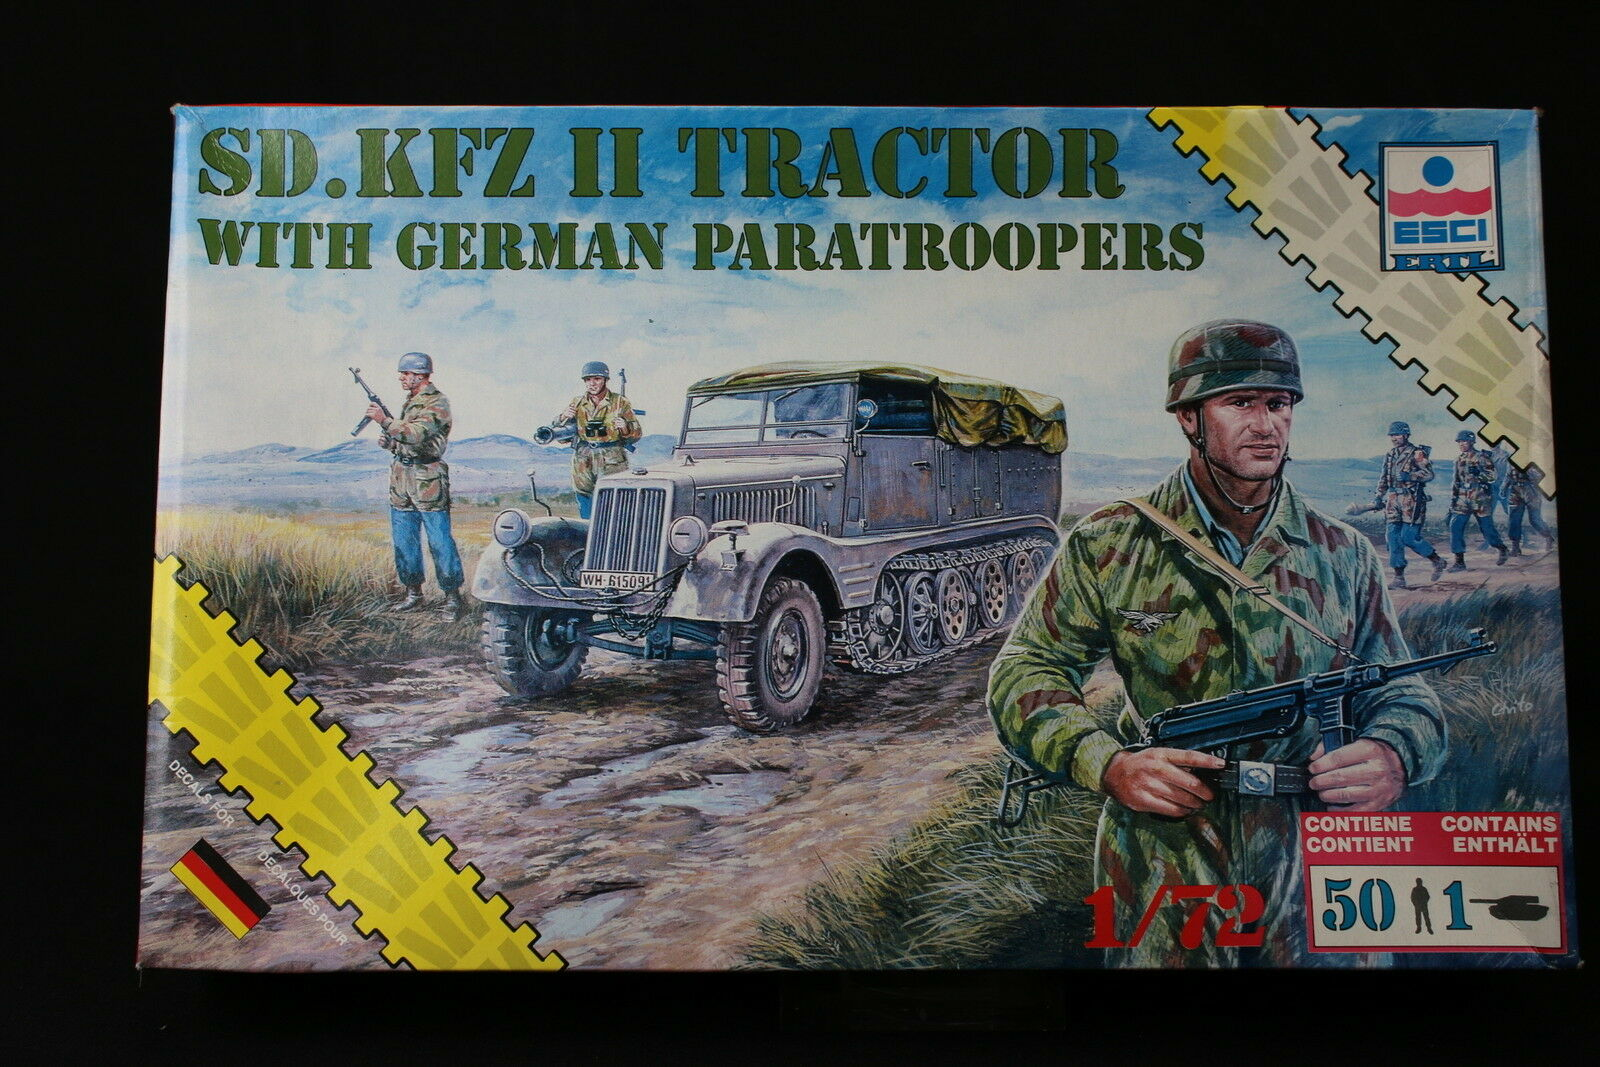 YD033 ESCI 1 72 maquette tank char 8624 SD.KFZ II Tractor & German Paratroopers